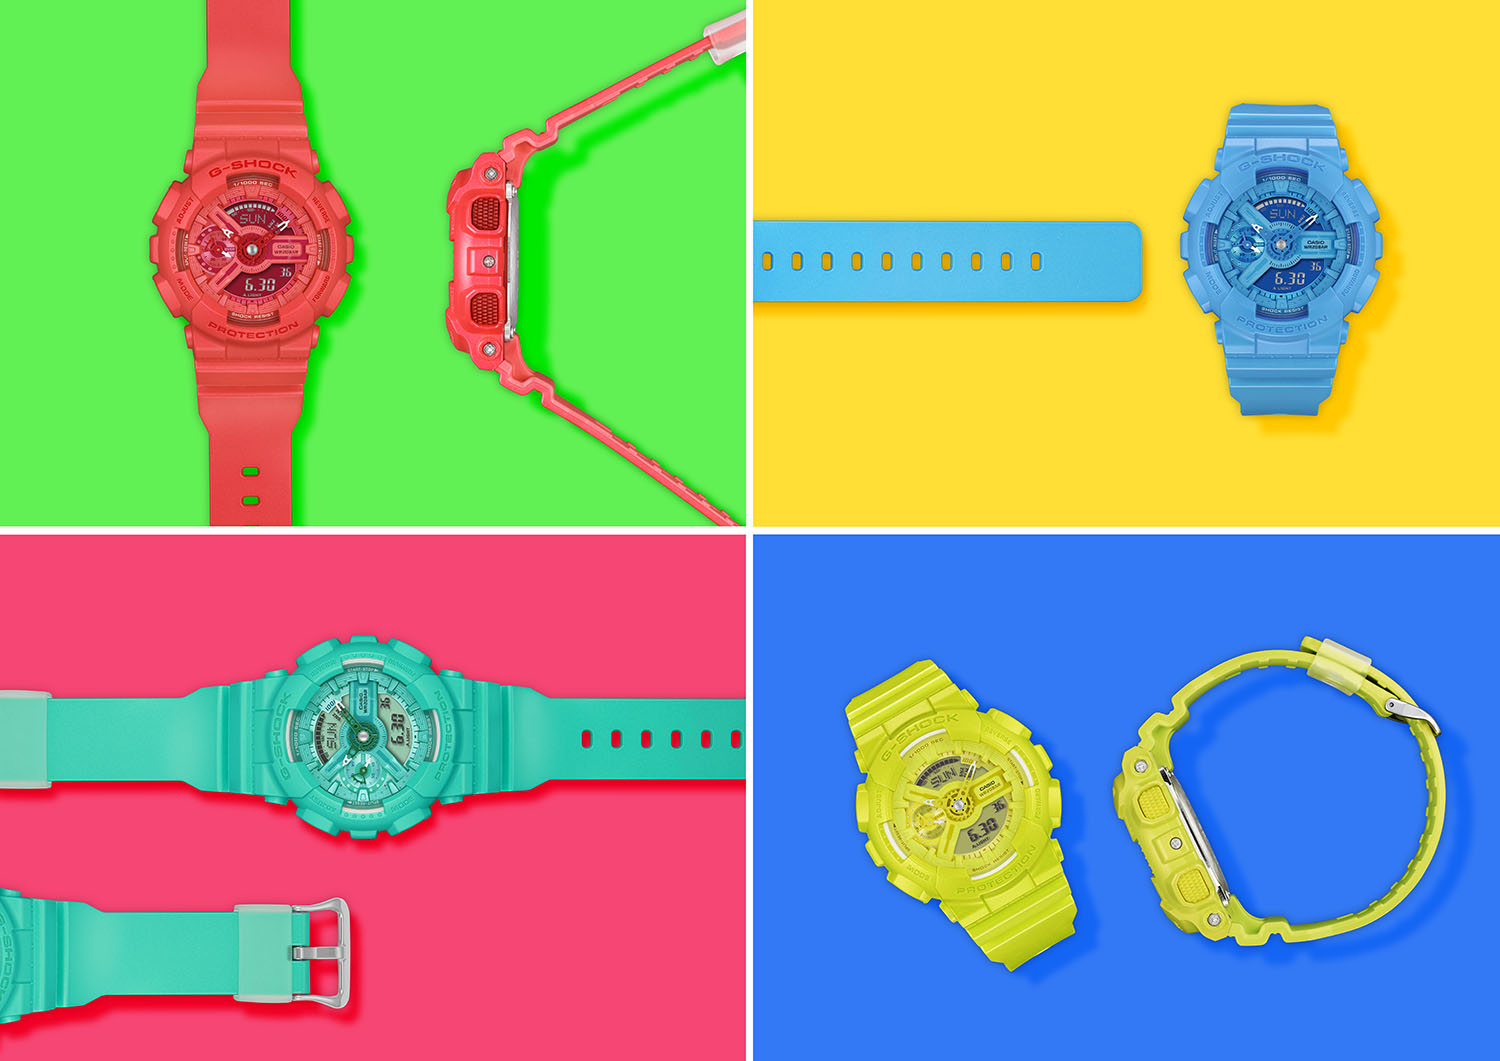 G-SHOCK S Series Vivid Color Collection